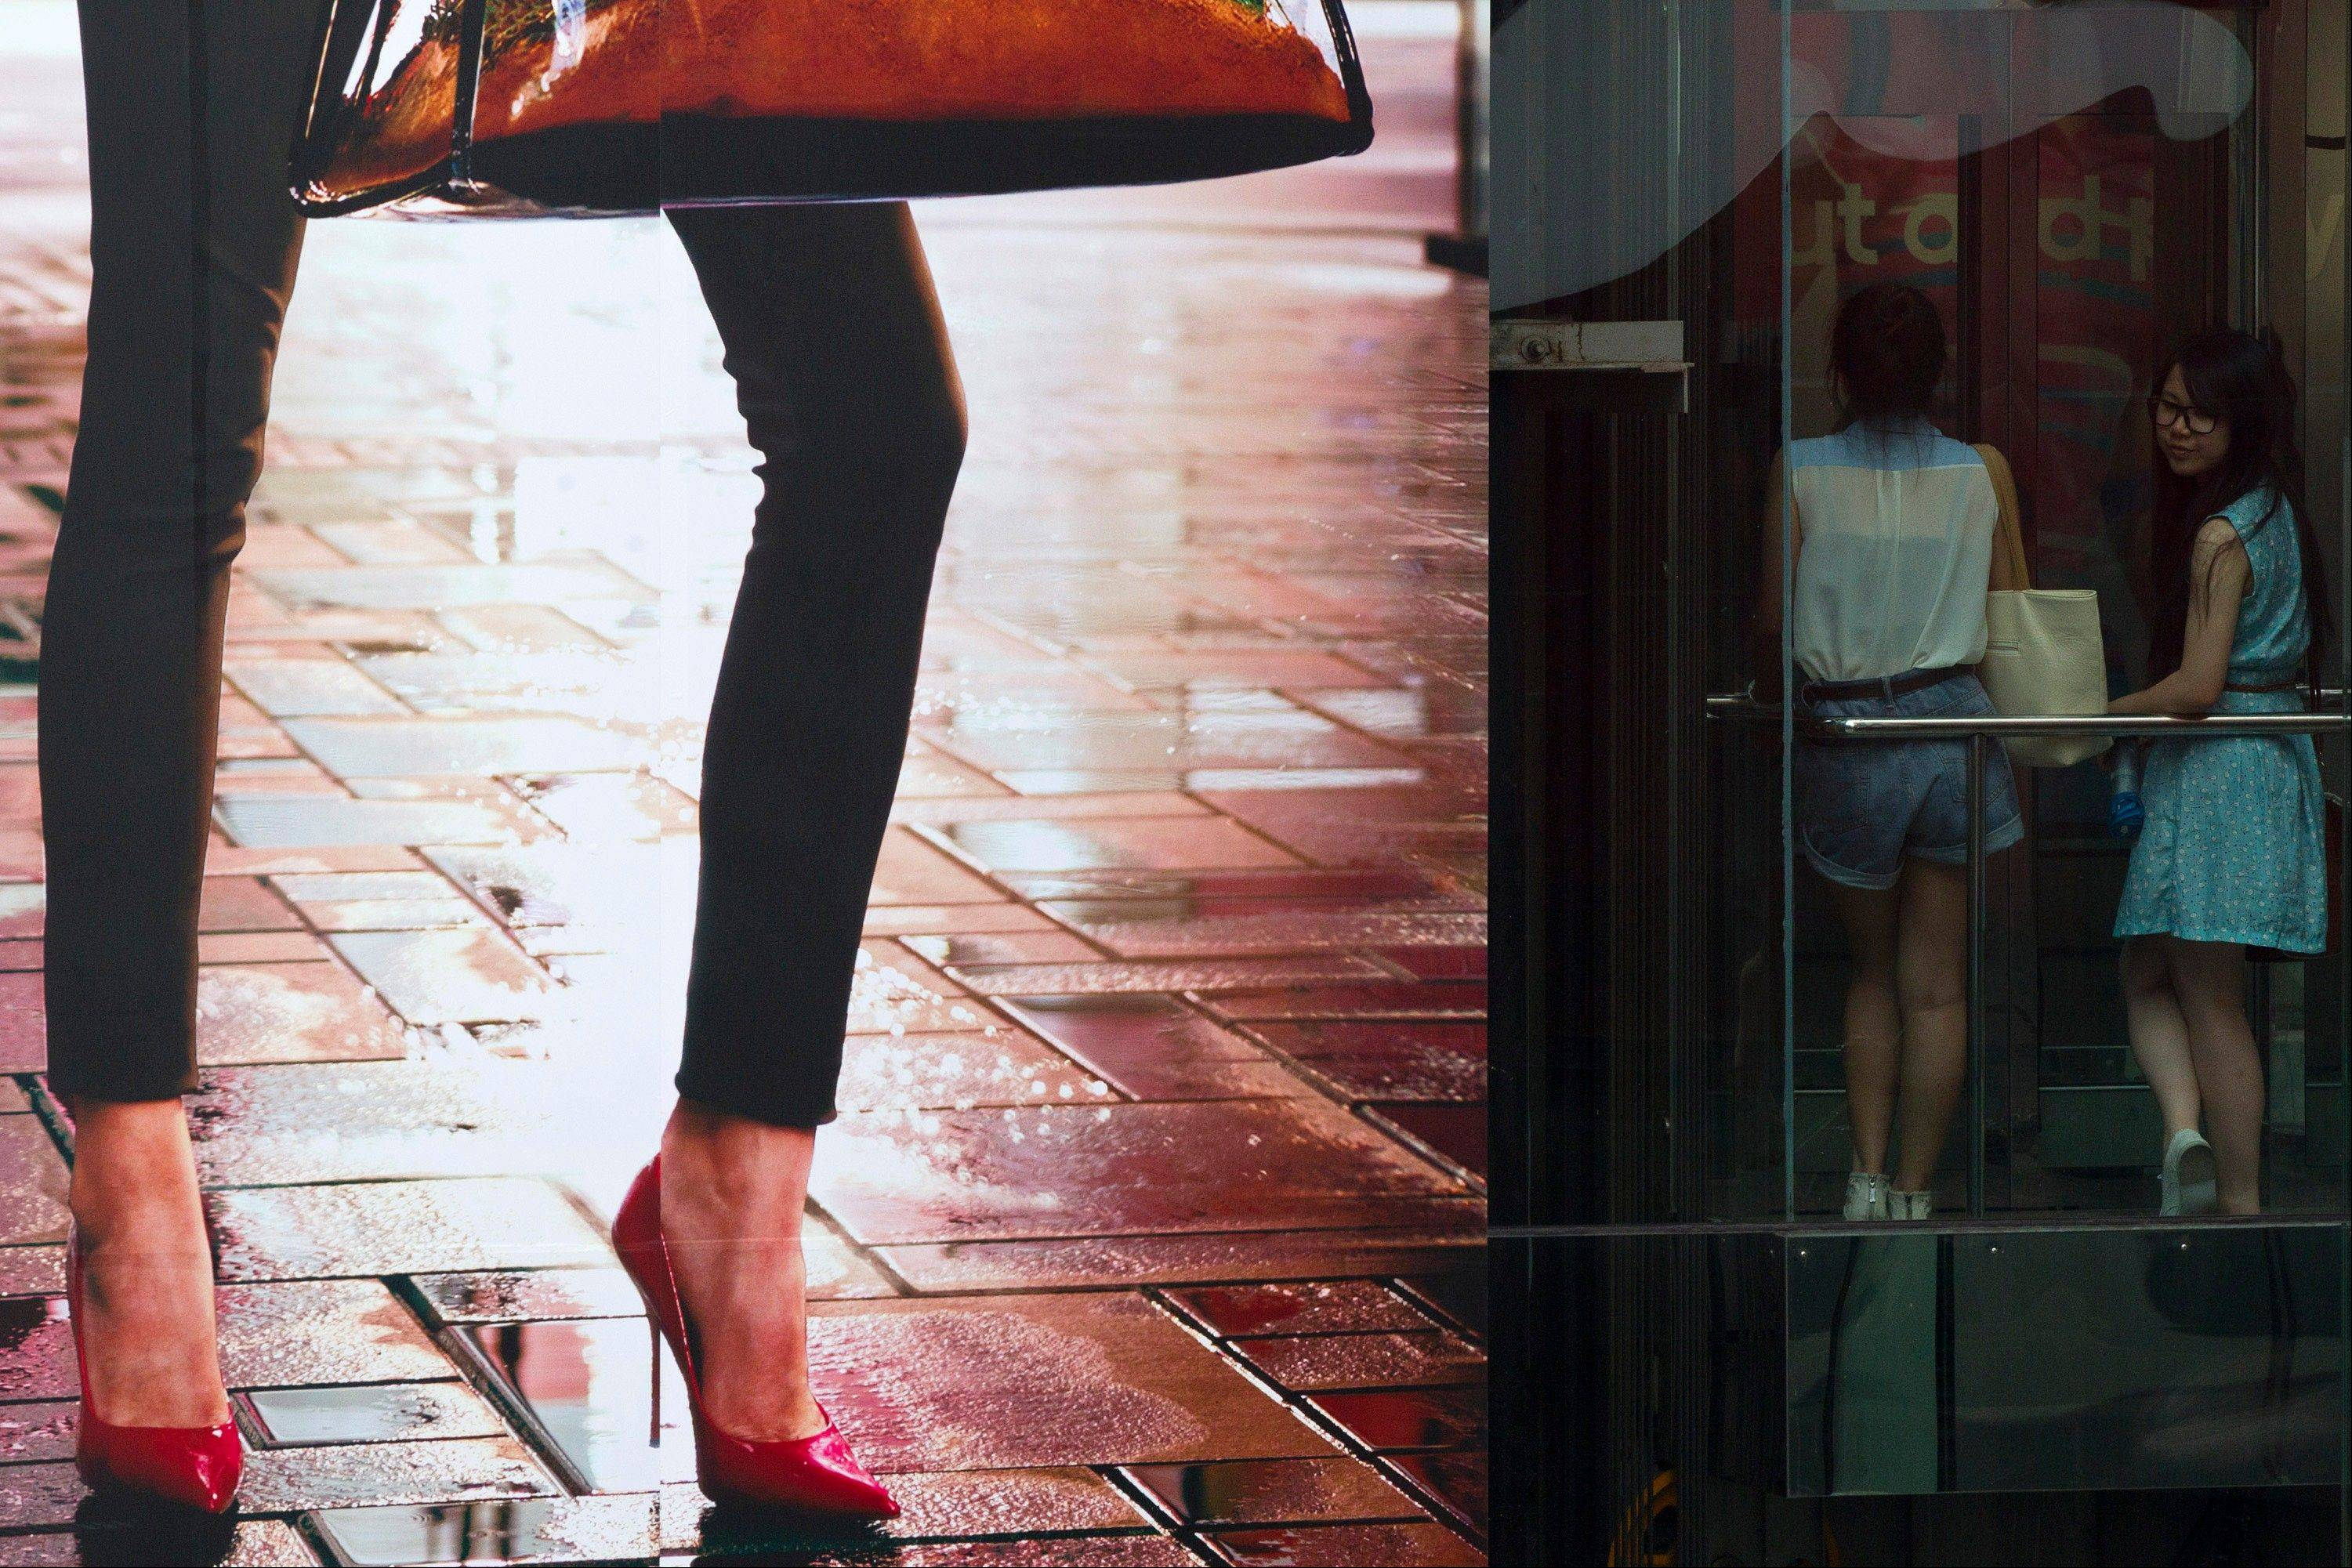 Two women stand in a lift near an advertisement board in Beijing's Central Business District on Wednesday. China's latest economic data indicate a deepening slowdown that is adding to pressure on communist leaders to revive growth and avert job losses and political tensions.